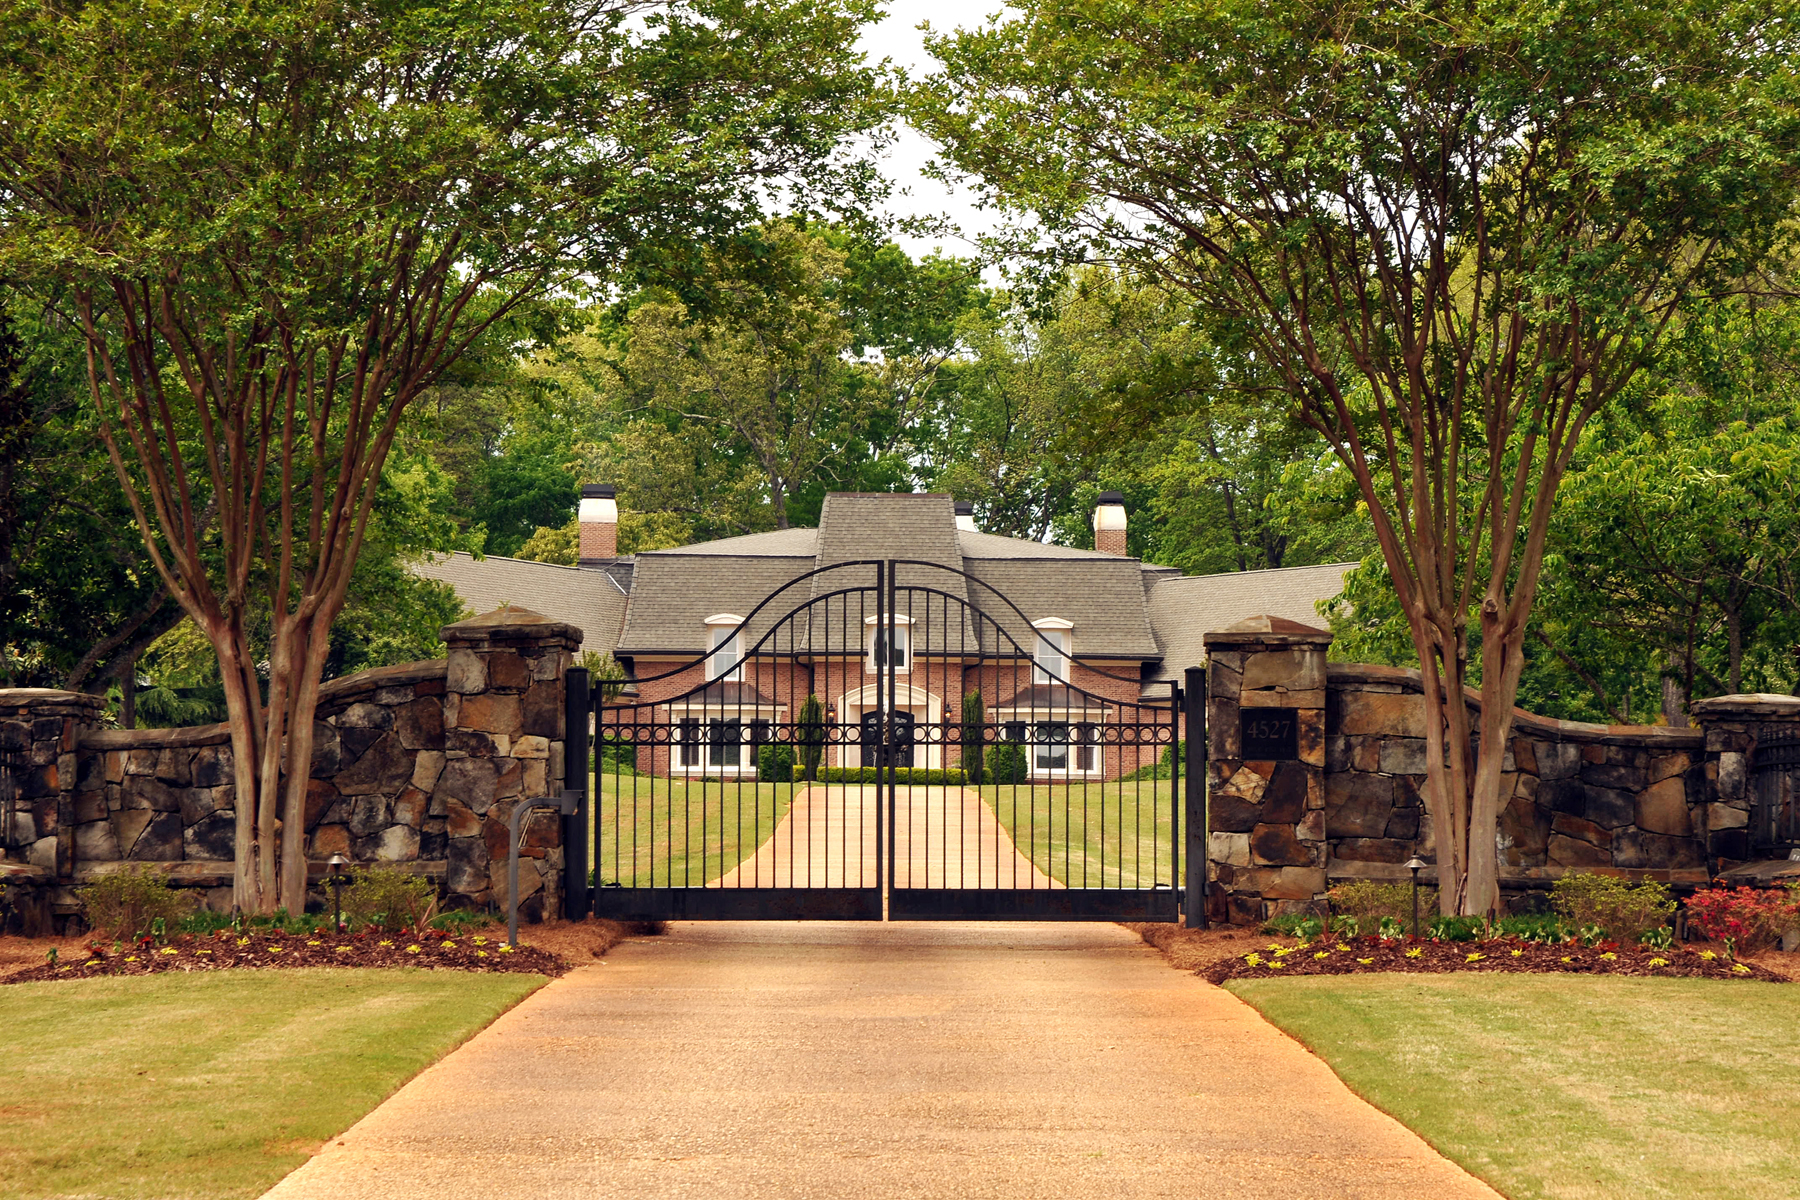 단독 가정 주택 용 매매 에 Glorious European Estate In Gwinnett County 4527 Shiloh Ridge Trail Snellville, 조지아, 30039 미국